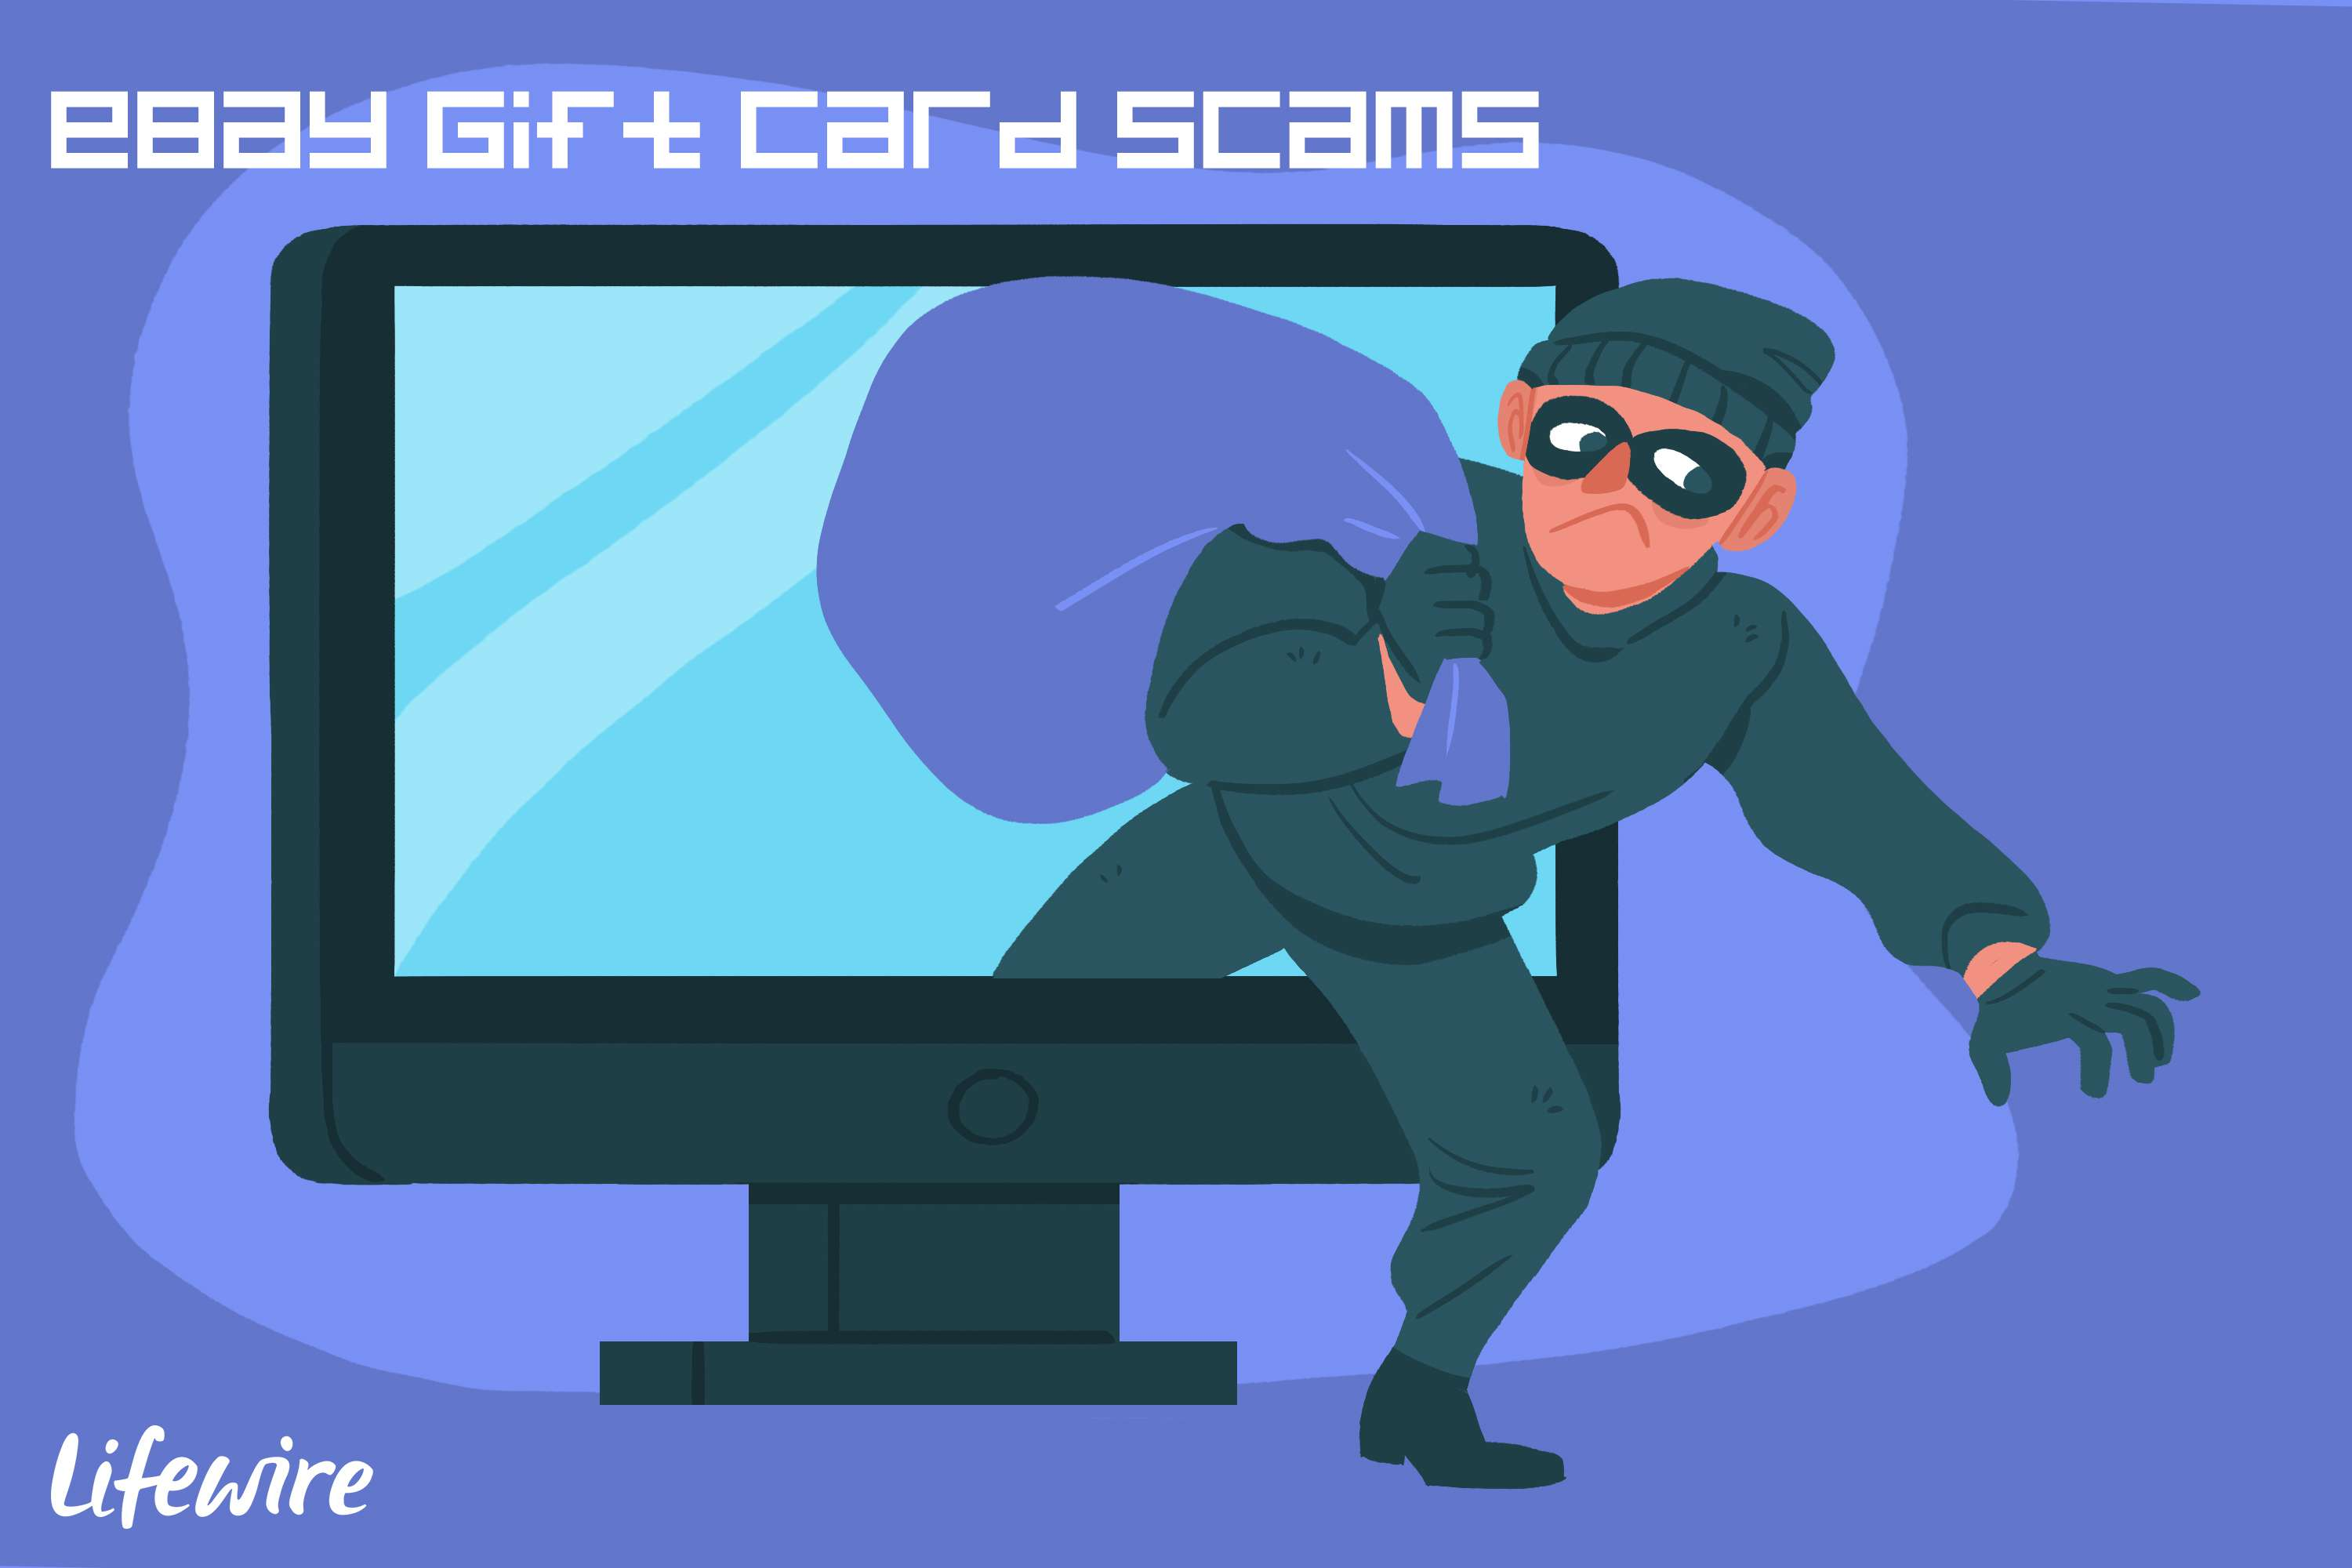 Ebay Gift Card Scams What They Are And How To Protect Yourself From Them